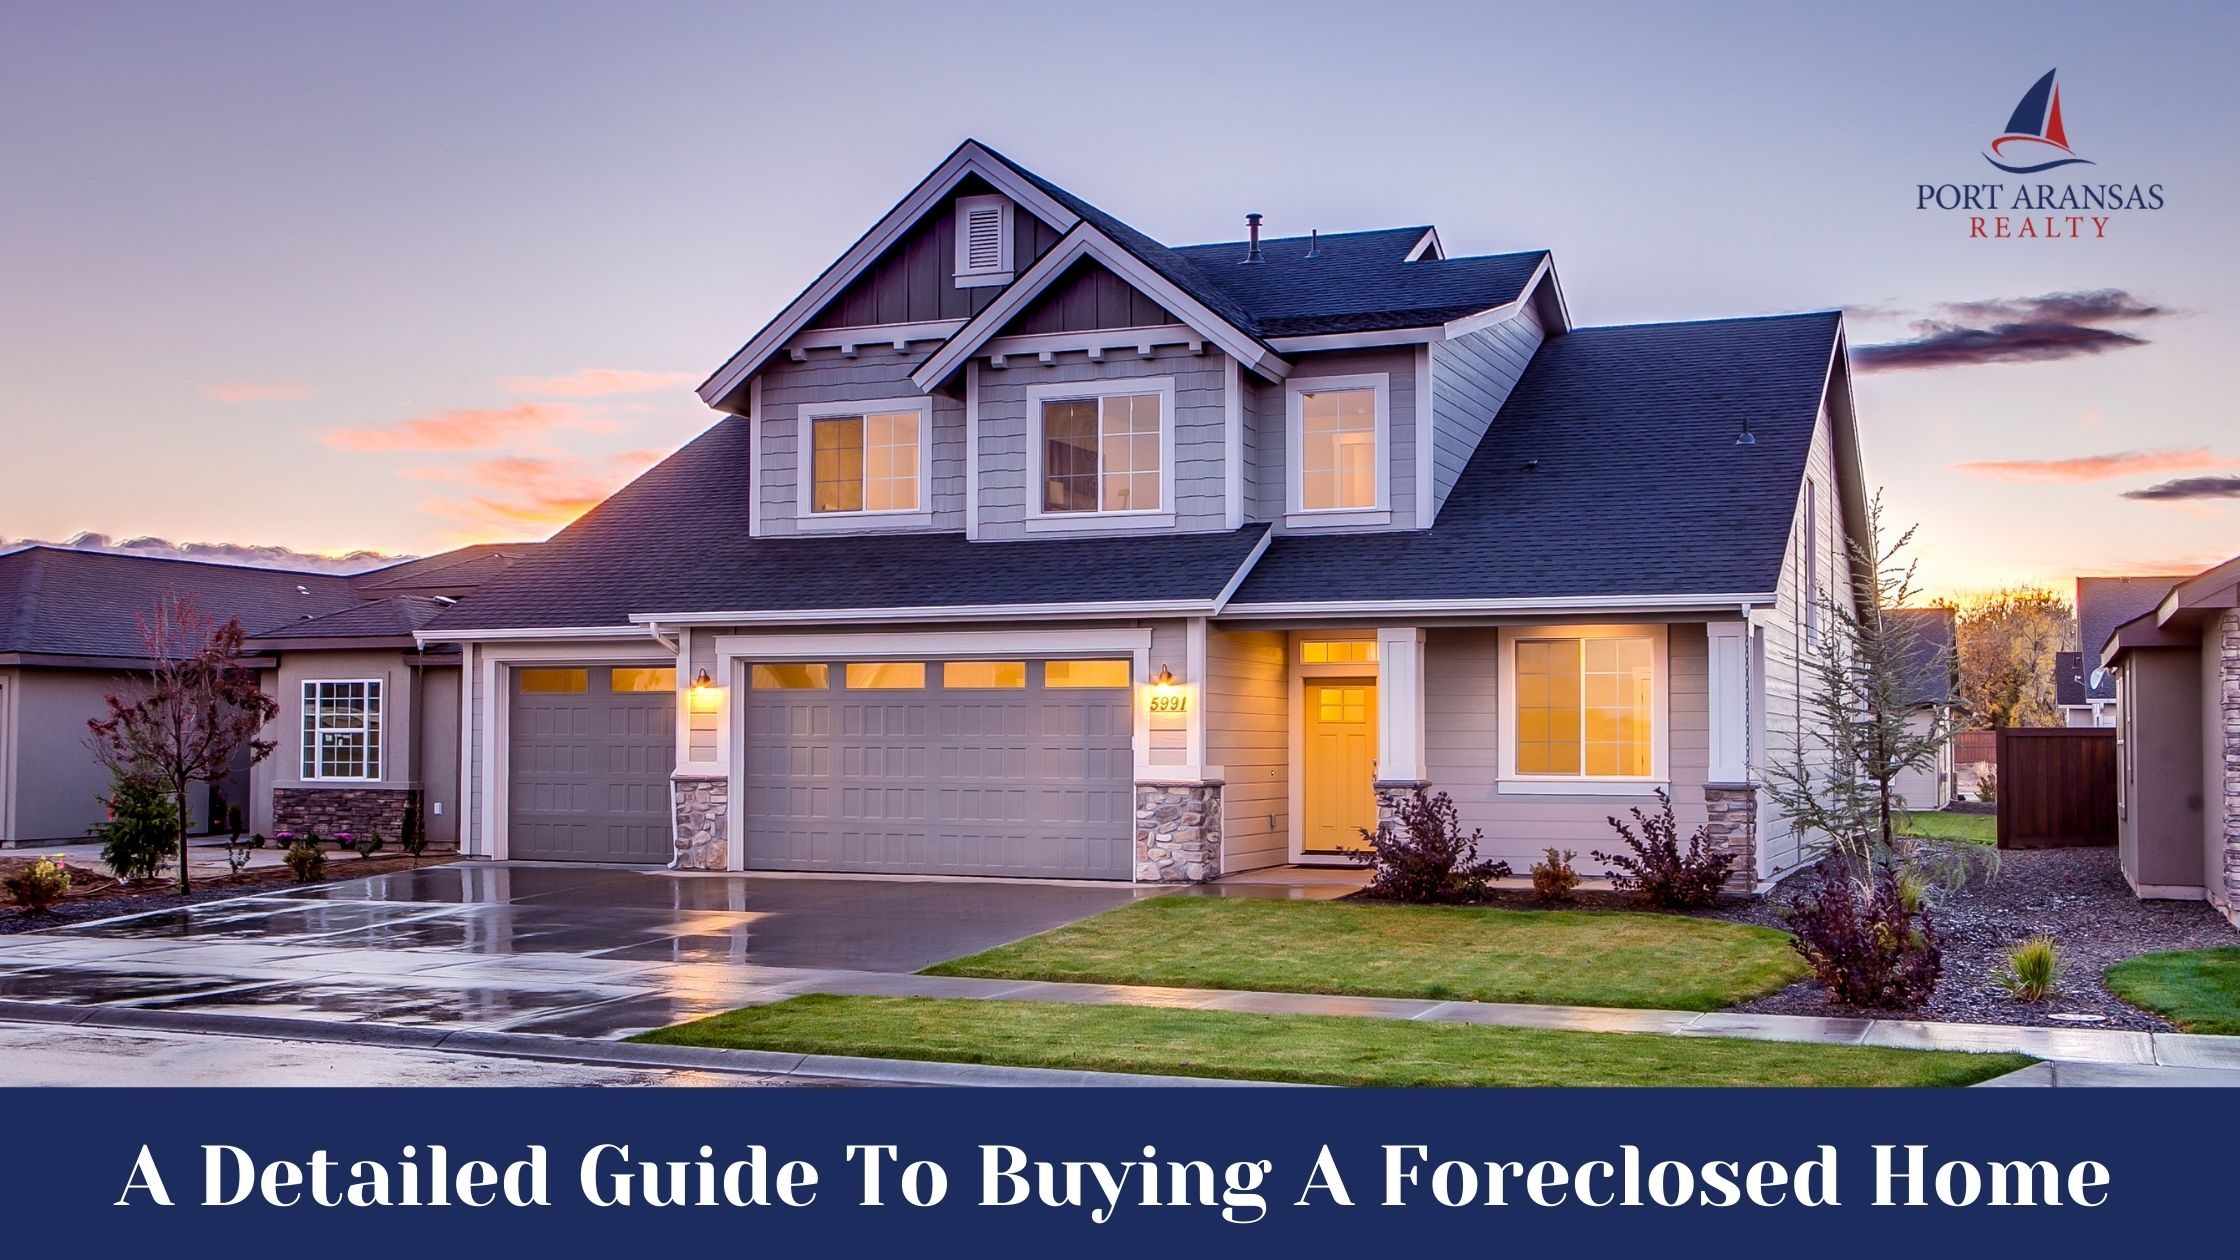 A Detailed Guide To Buying A Foreclosed Home